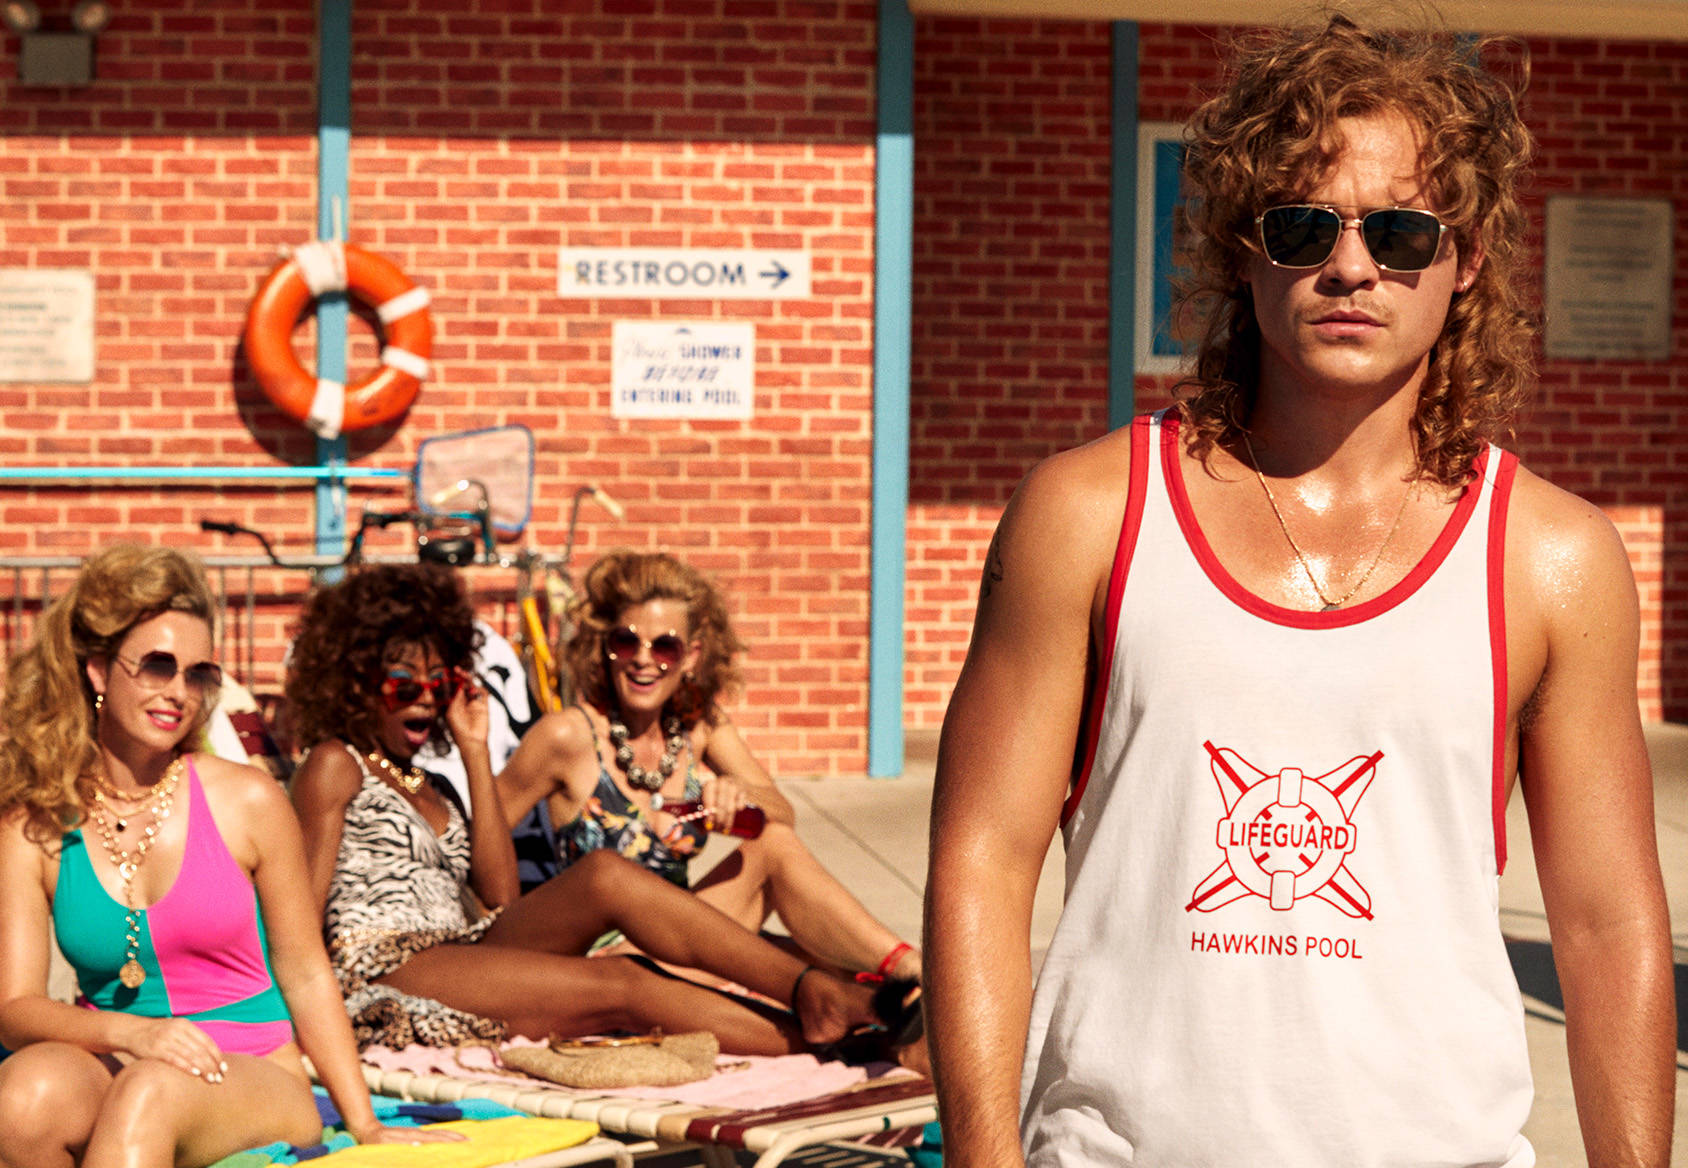 H&M Guy wearing a white lifeguard vest standing and sunglasses with three girls behind him on sun loungers - STRANGER THINGS